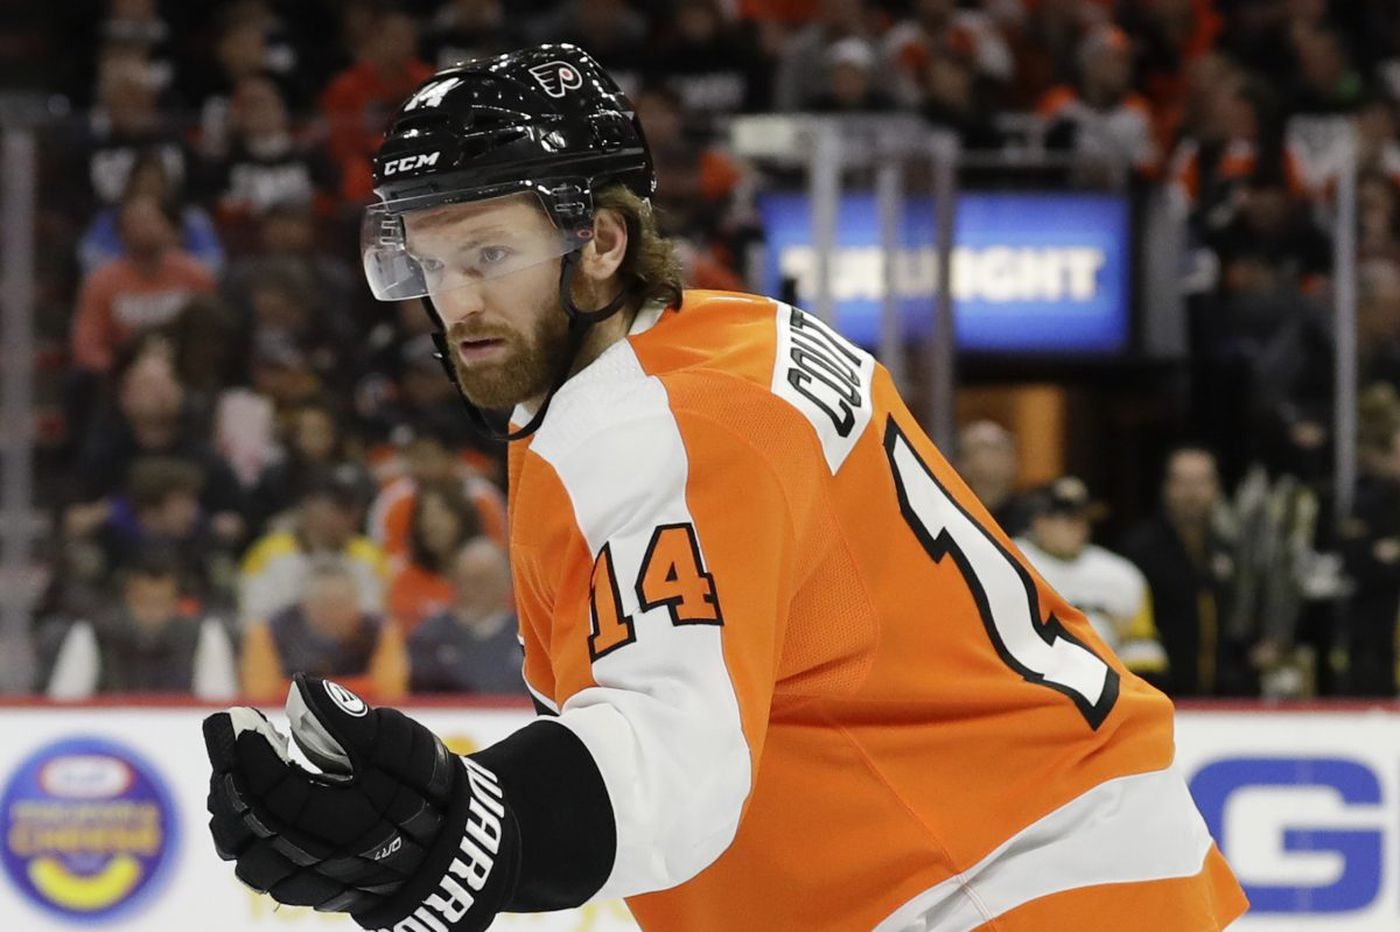 Flyers' Sean Couturier named finalist for Selke Trophy